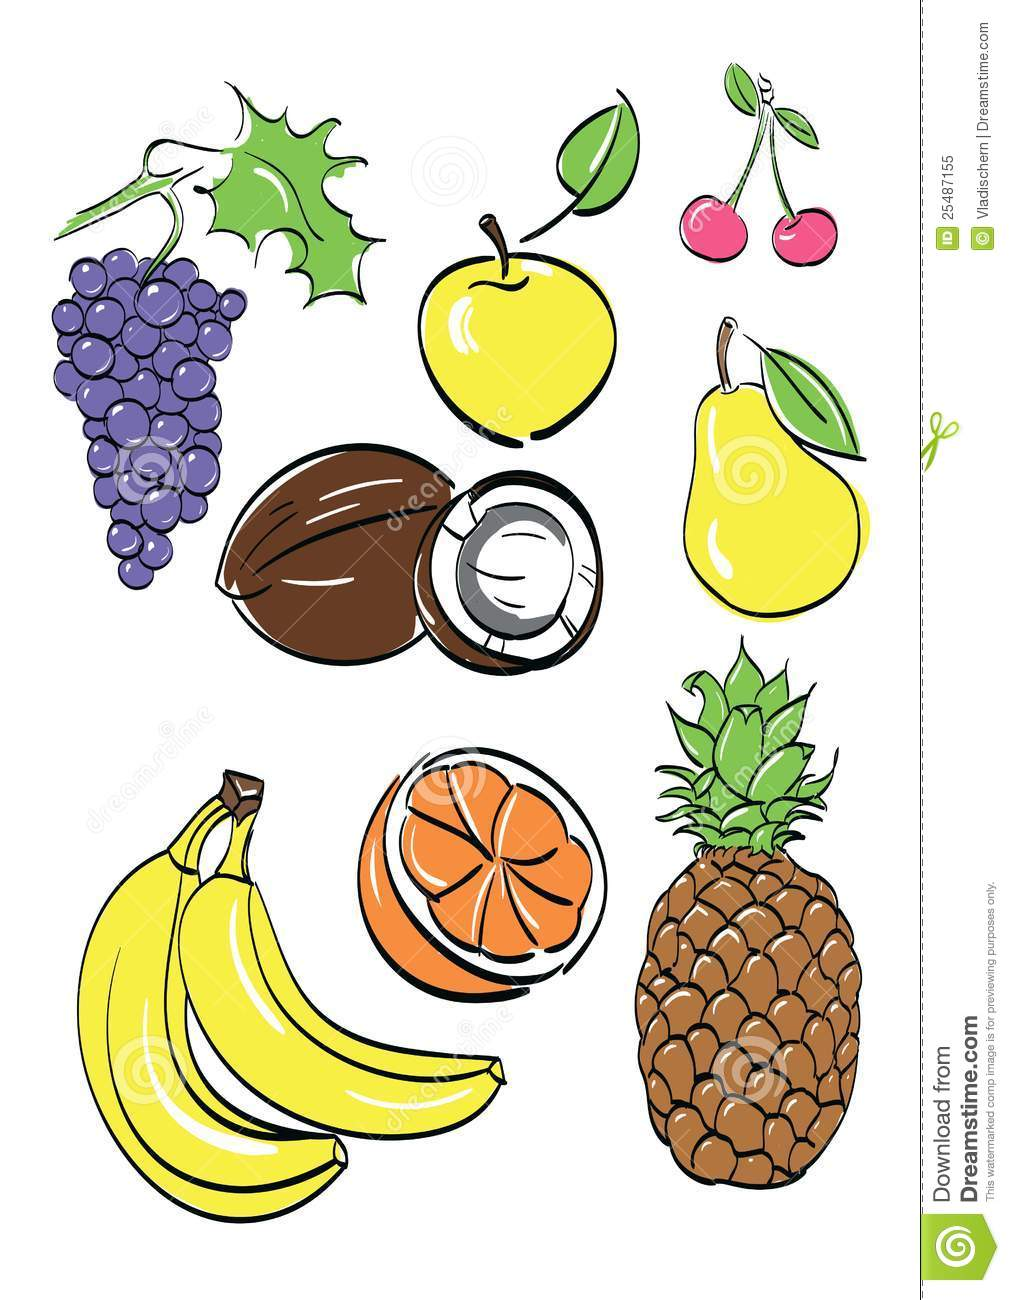 Frutta differente impostata. illustrazione di vettore